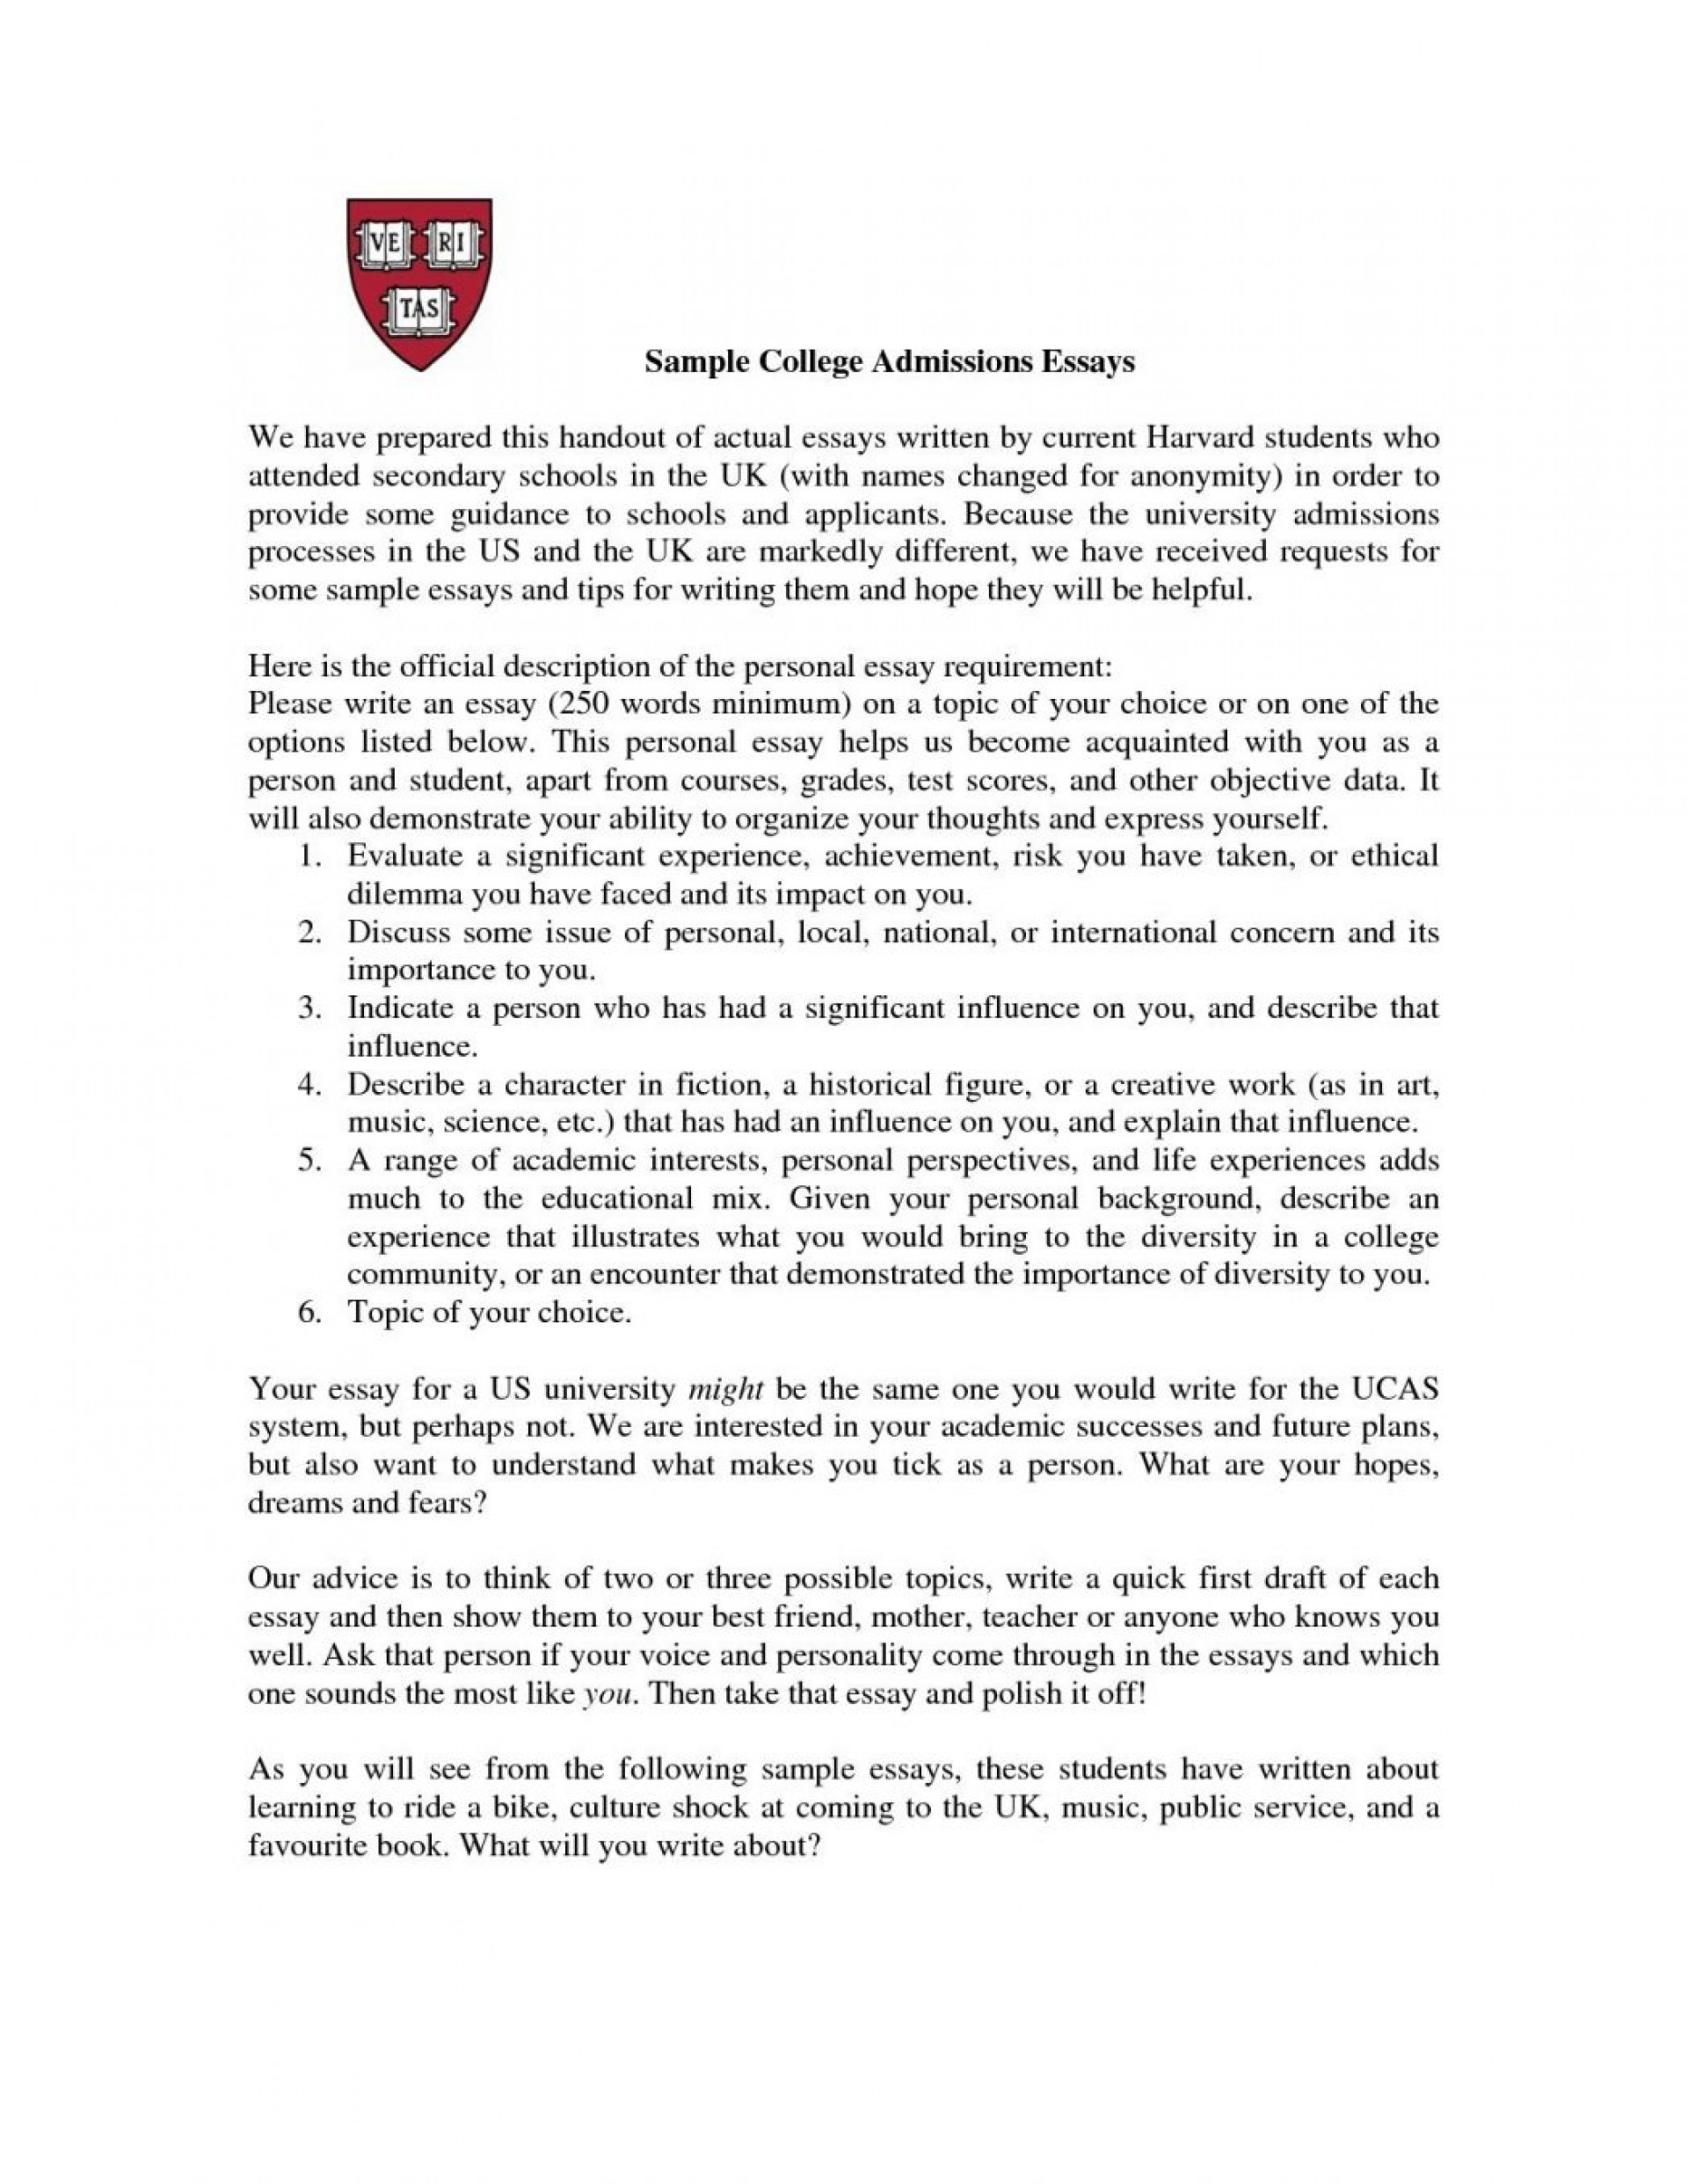 003 Common App Essays That Worked Harvard Essay Example Template Design College Examples Collection Of Free Application Transfer Topic Inside Words Writing Workshop Phenomenal 1920